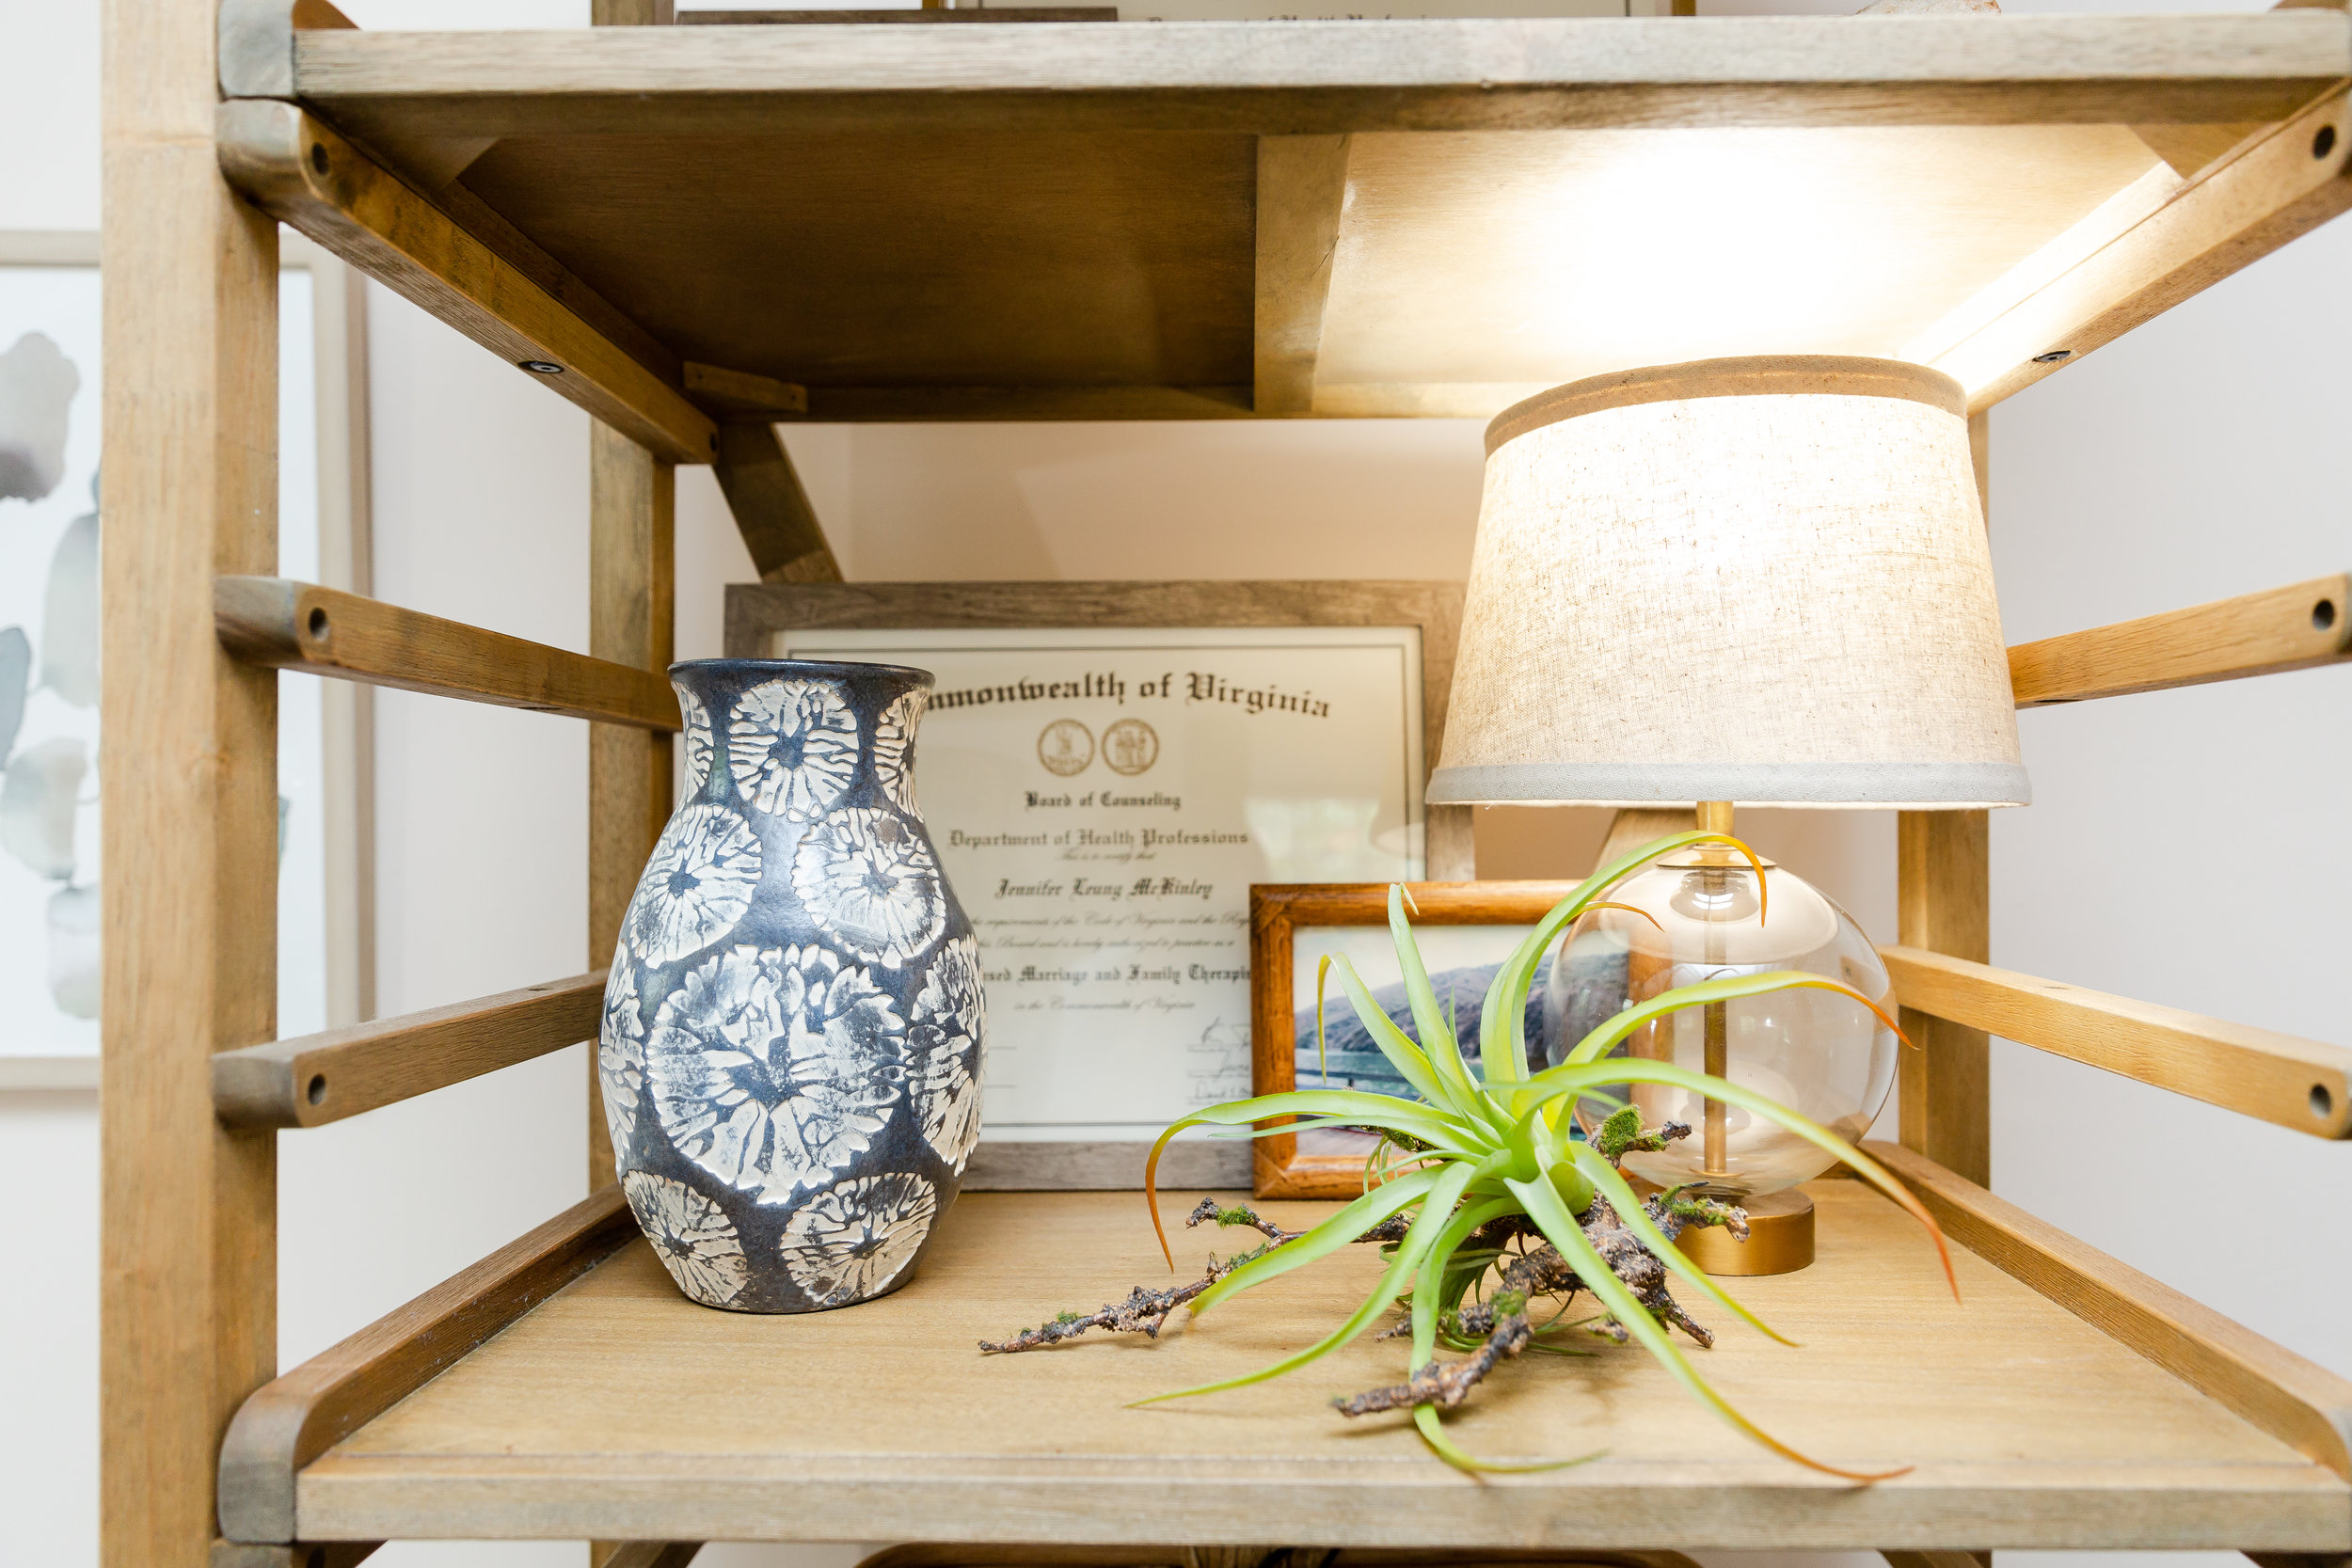 Looking back at the original design, I felt that this bookshelf looked a bit bare.  To flesh it out, I worked in these rattan baskets from World Market styled with some frames, ceramics, and crystals.